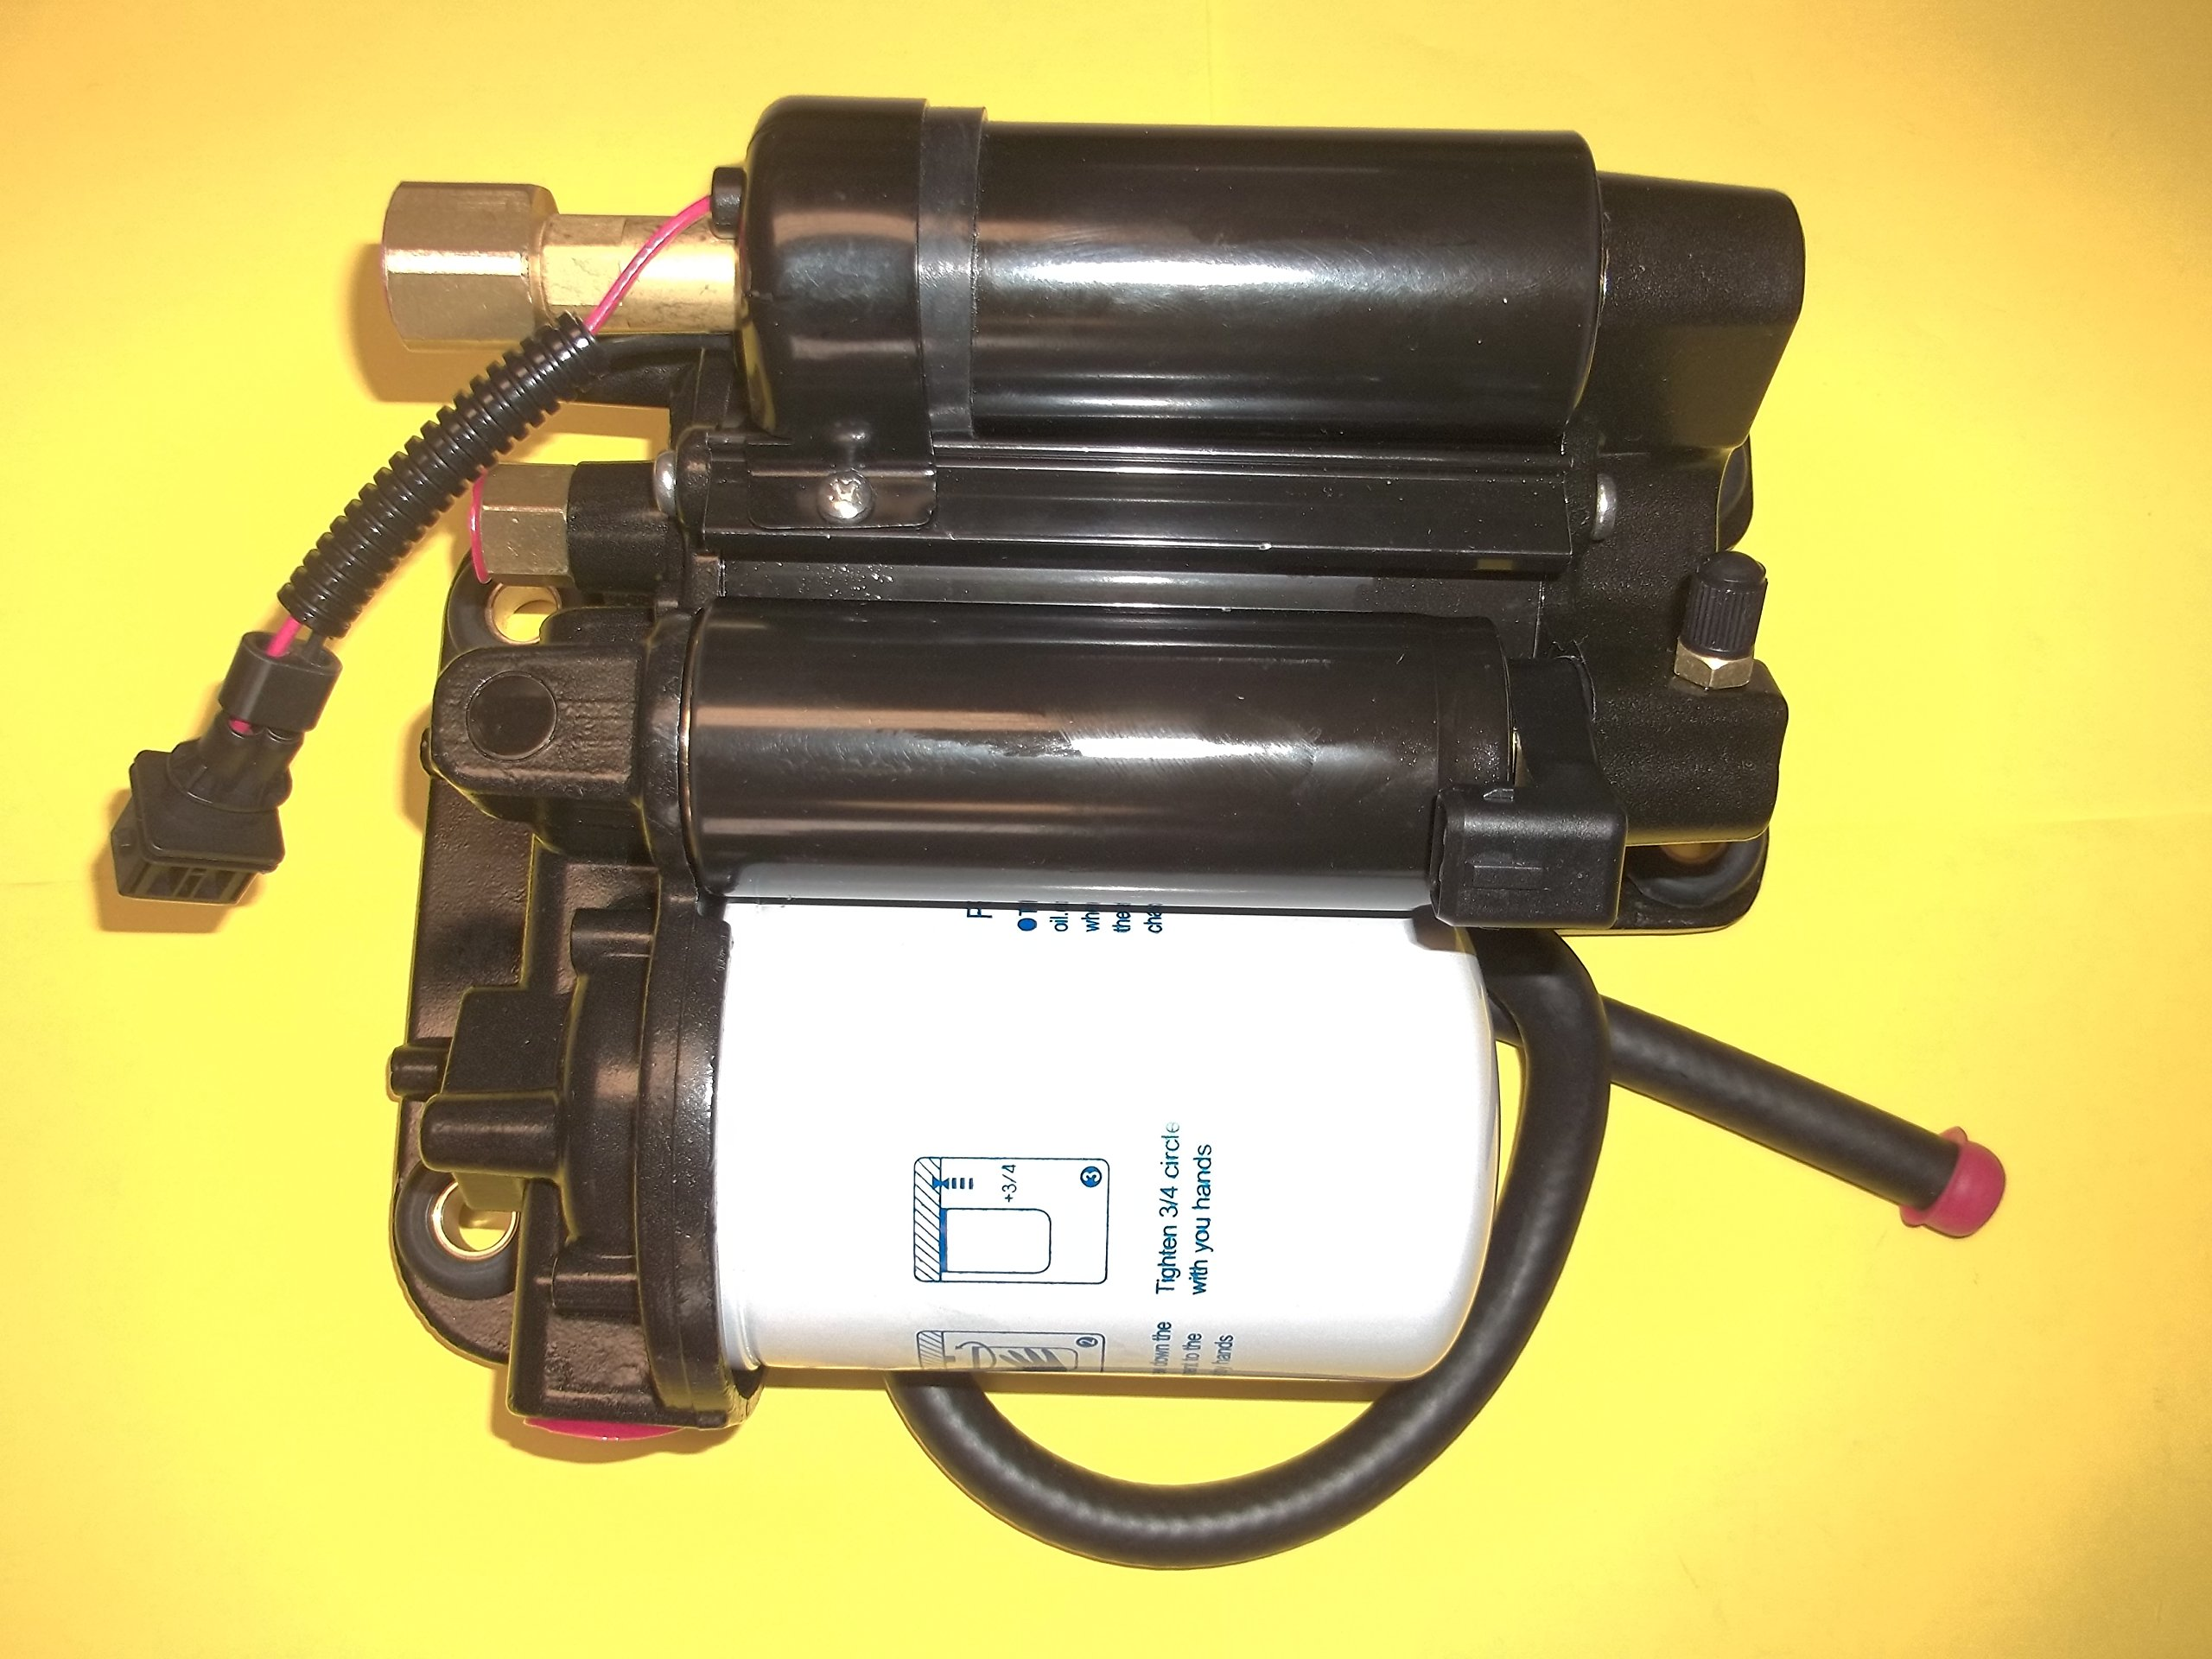 FUEL PUMP ASSM FOR VOLVO PENTA 4.3 5.0 5.7 GXI OSI GI by Boise Boat Works